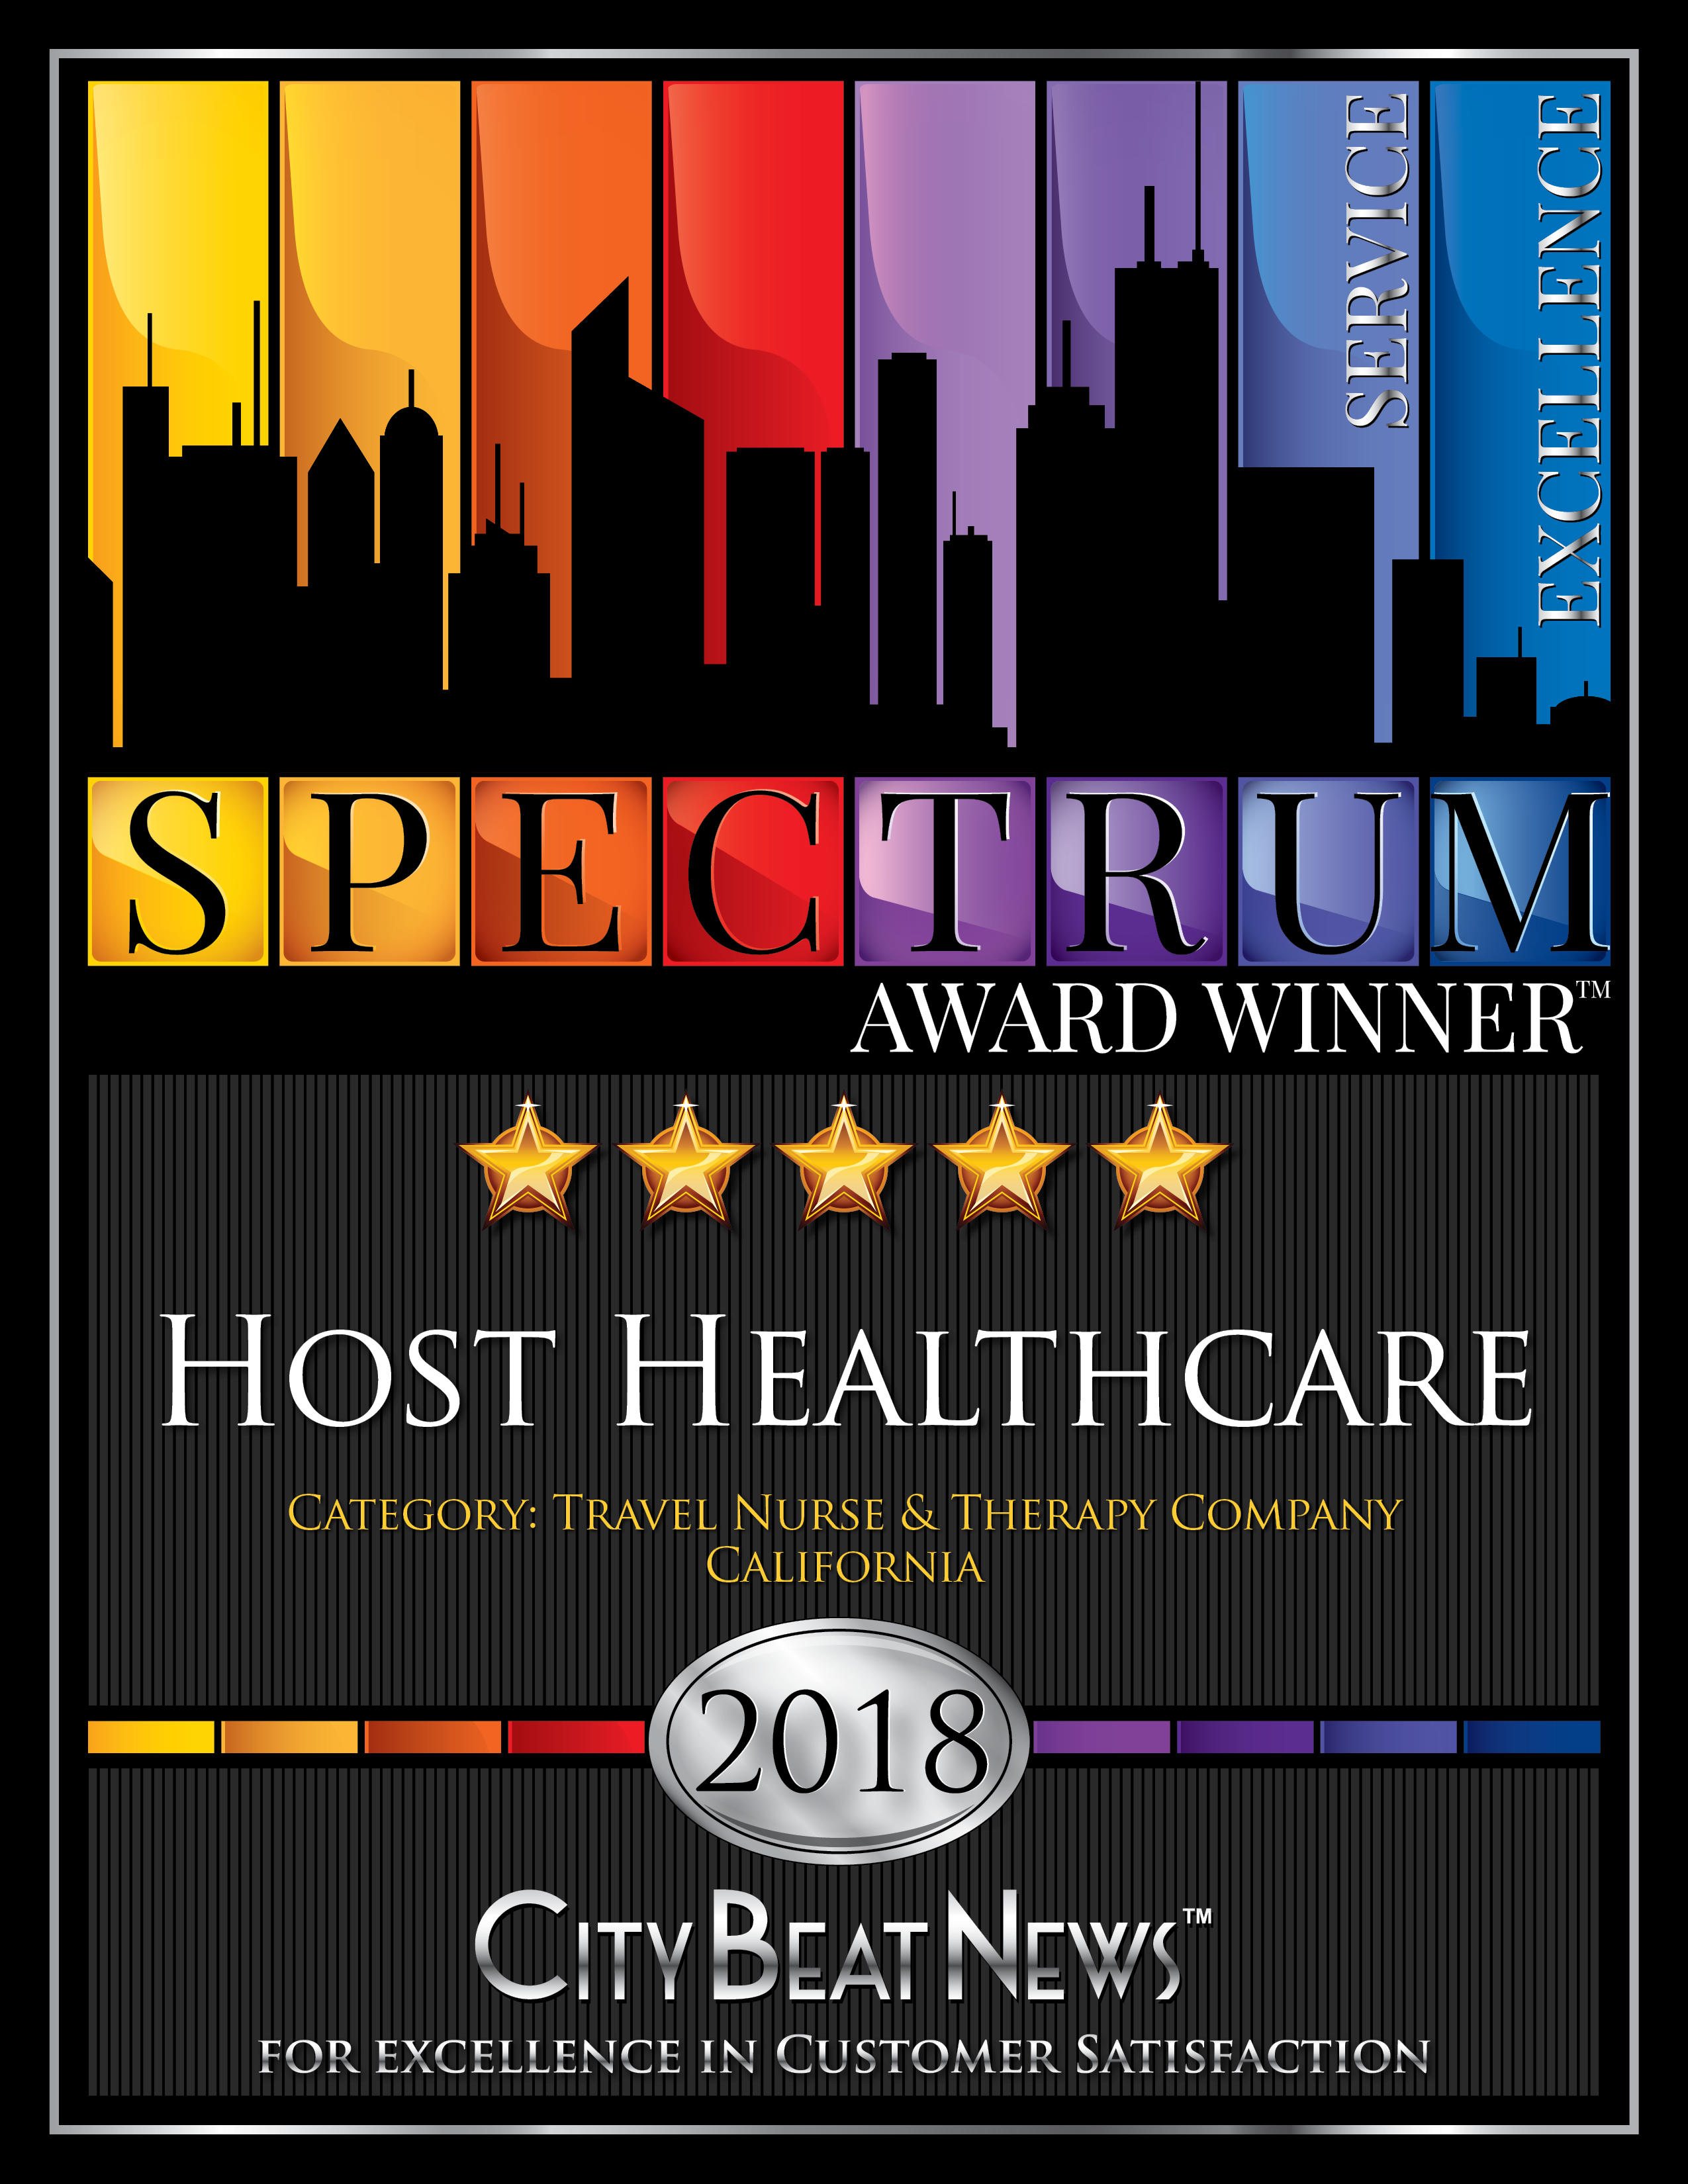 Five-Star, 2018 City Beat News Spectrum Award Winner, Host Healthcare